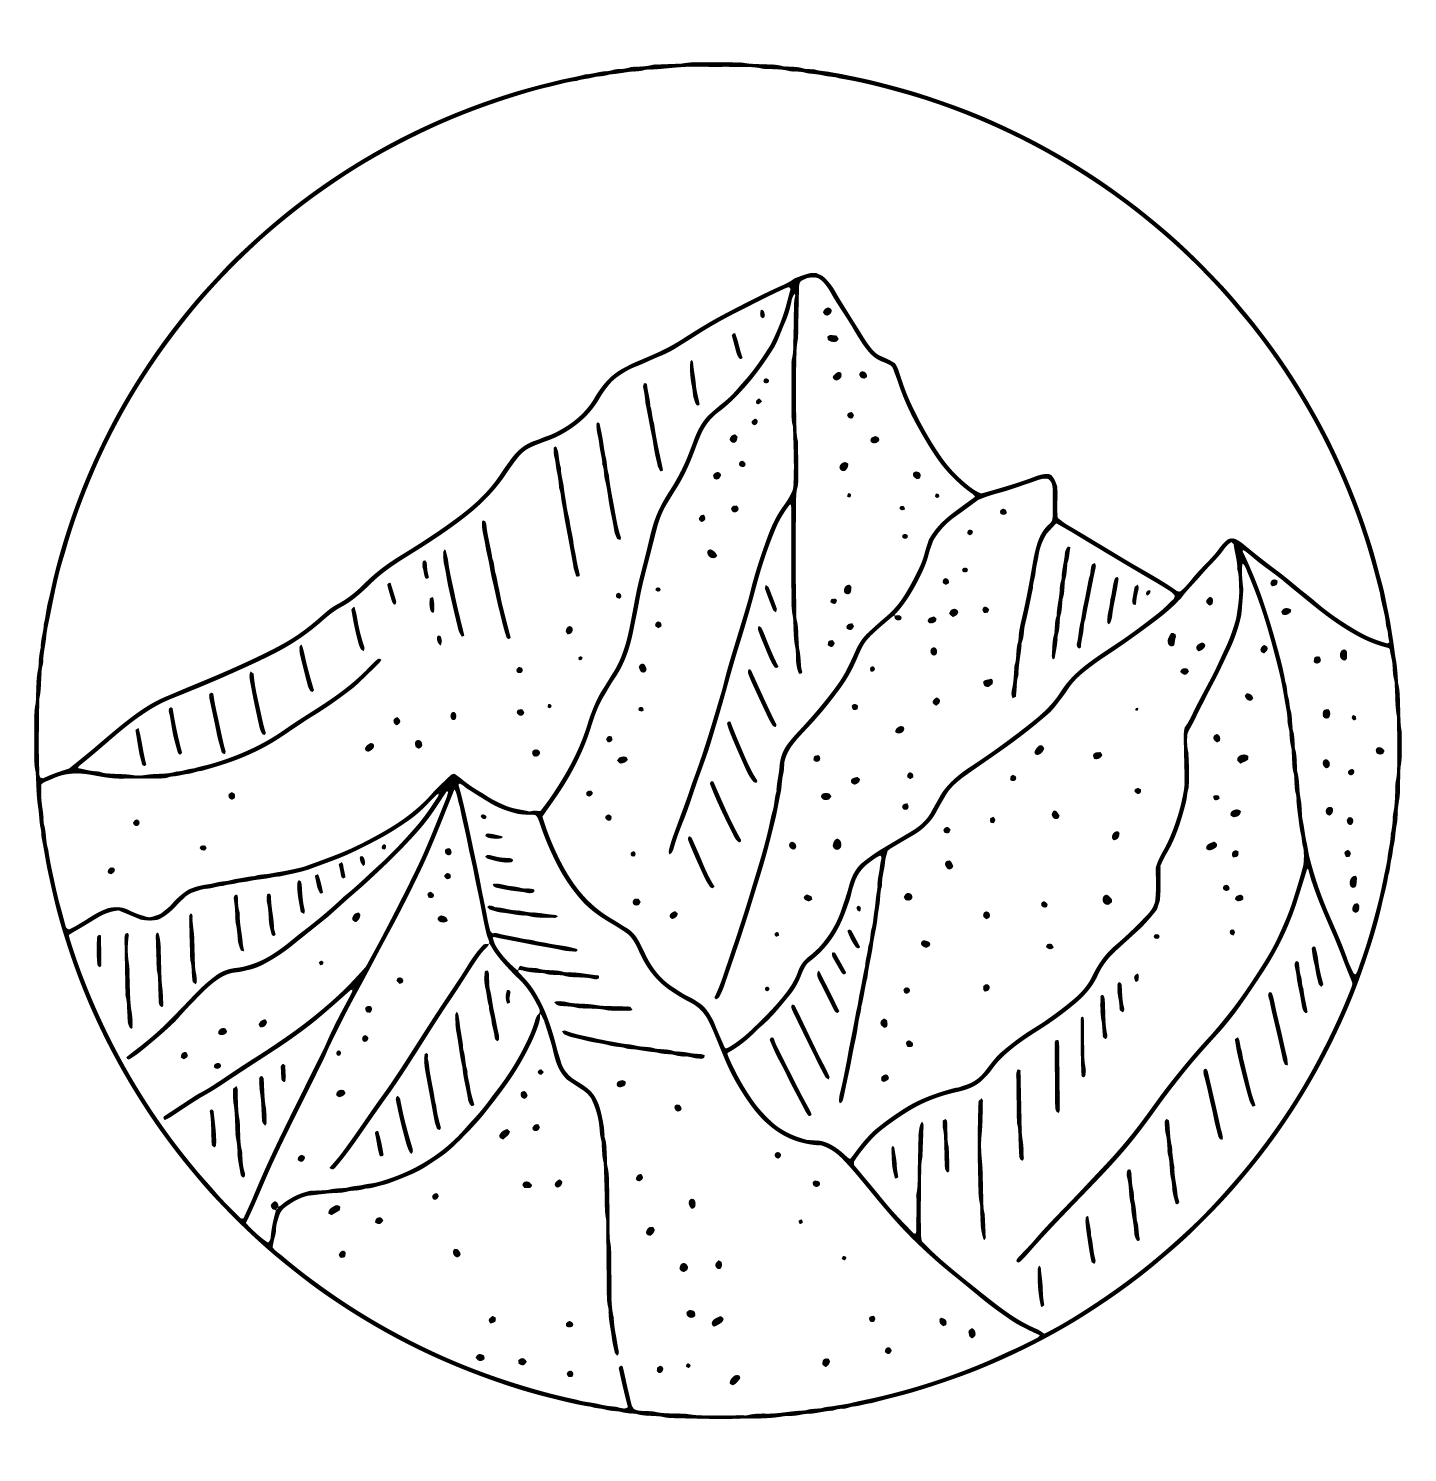 mountains-04.png